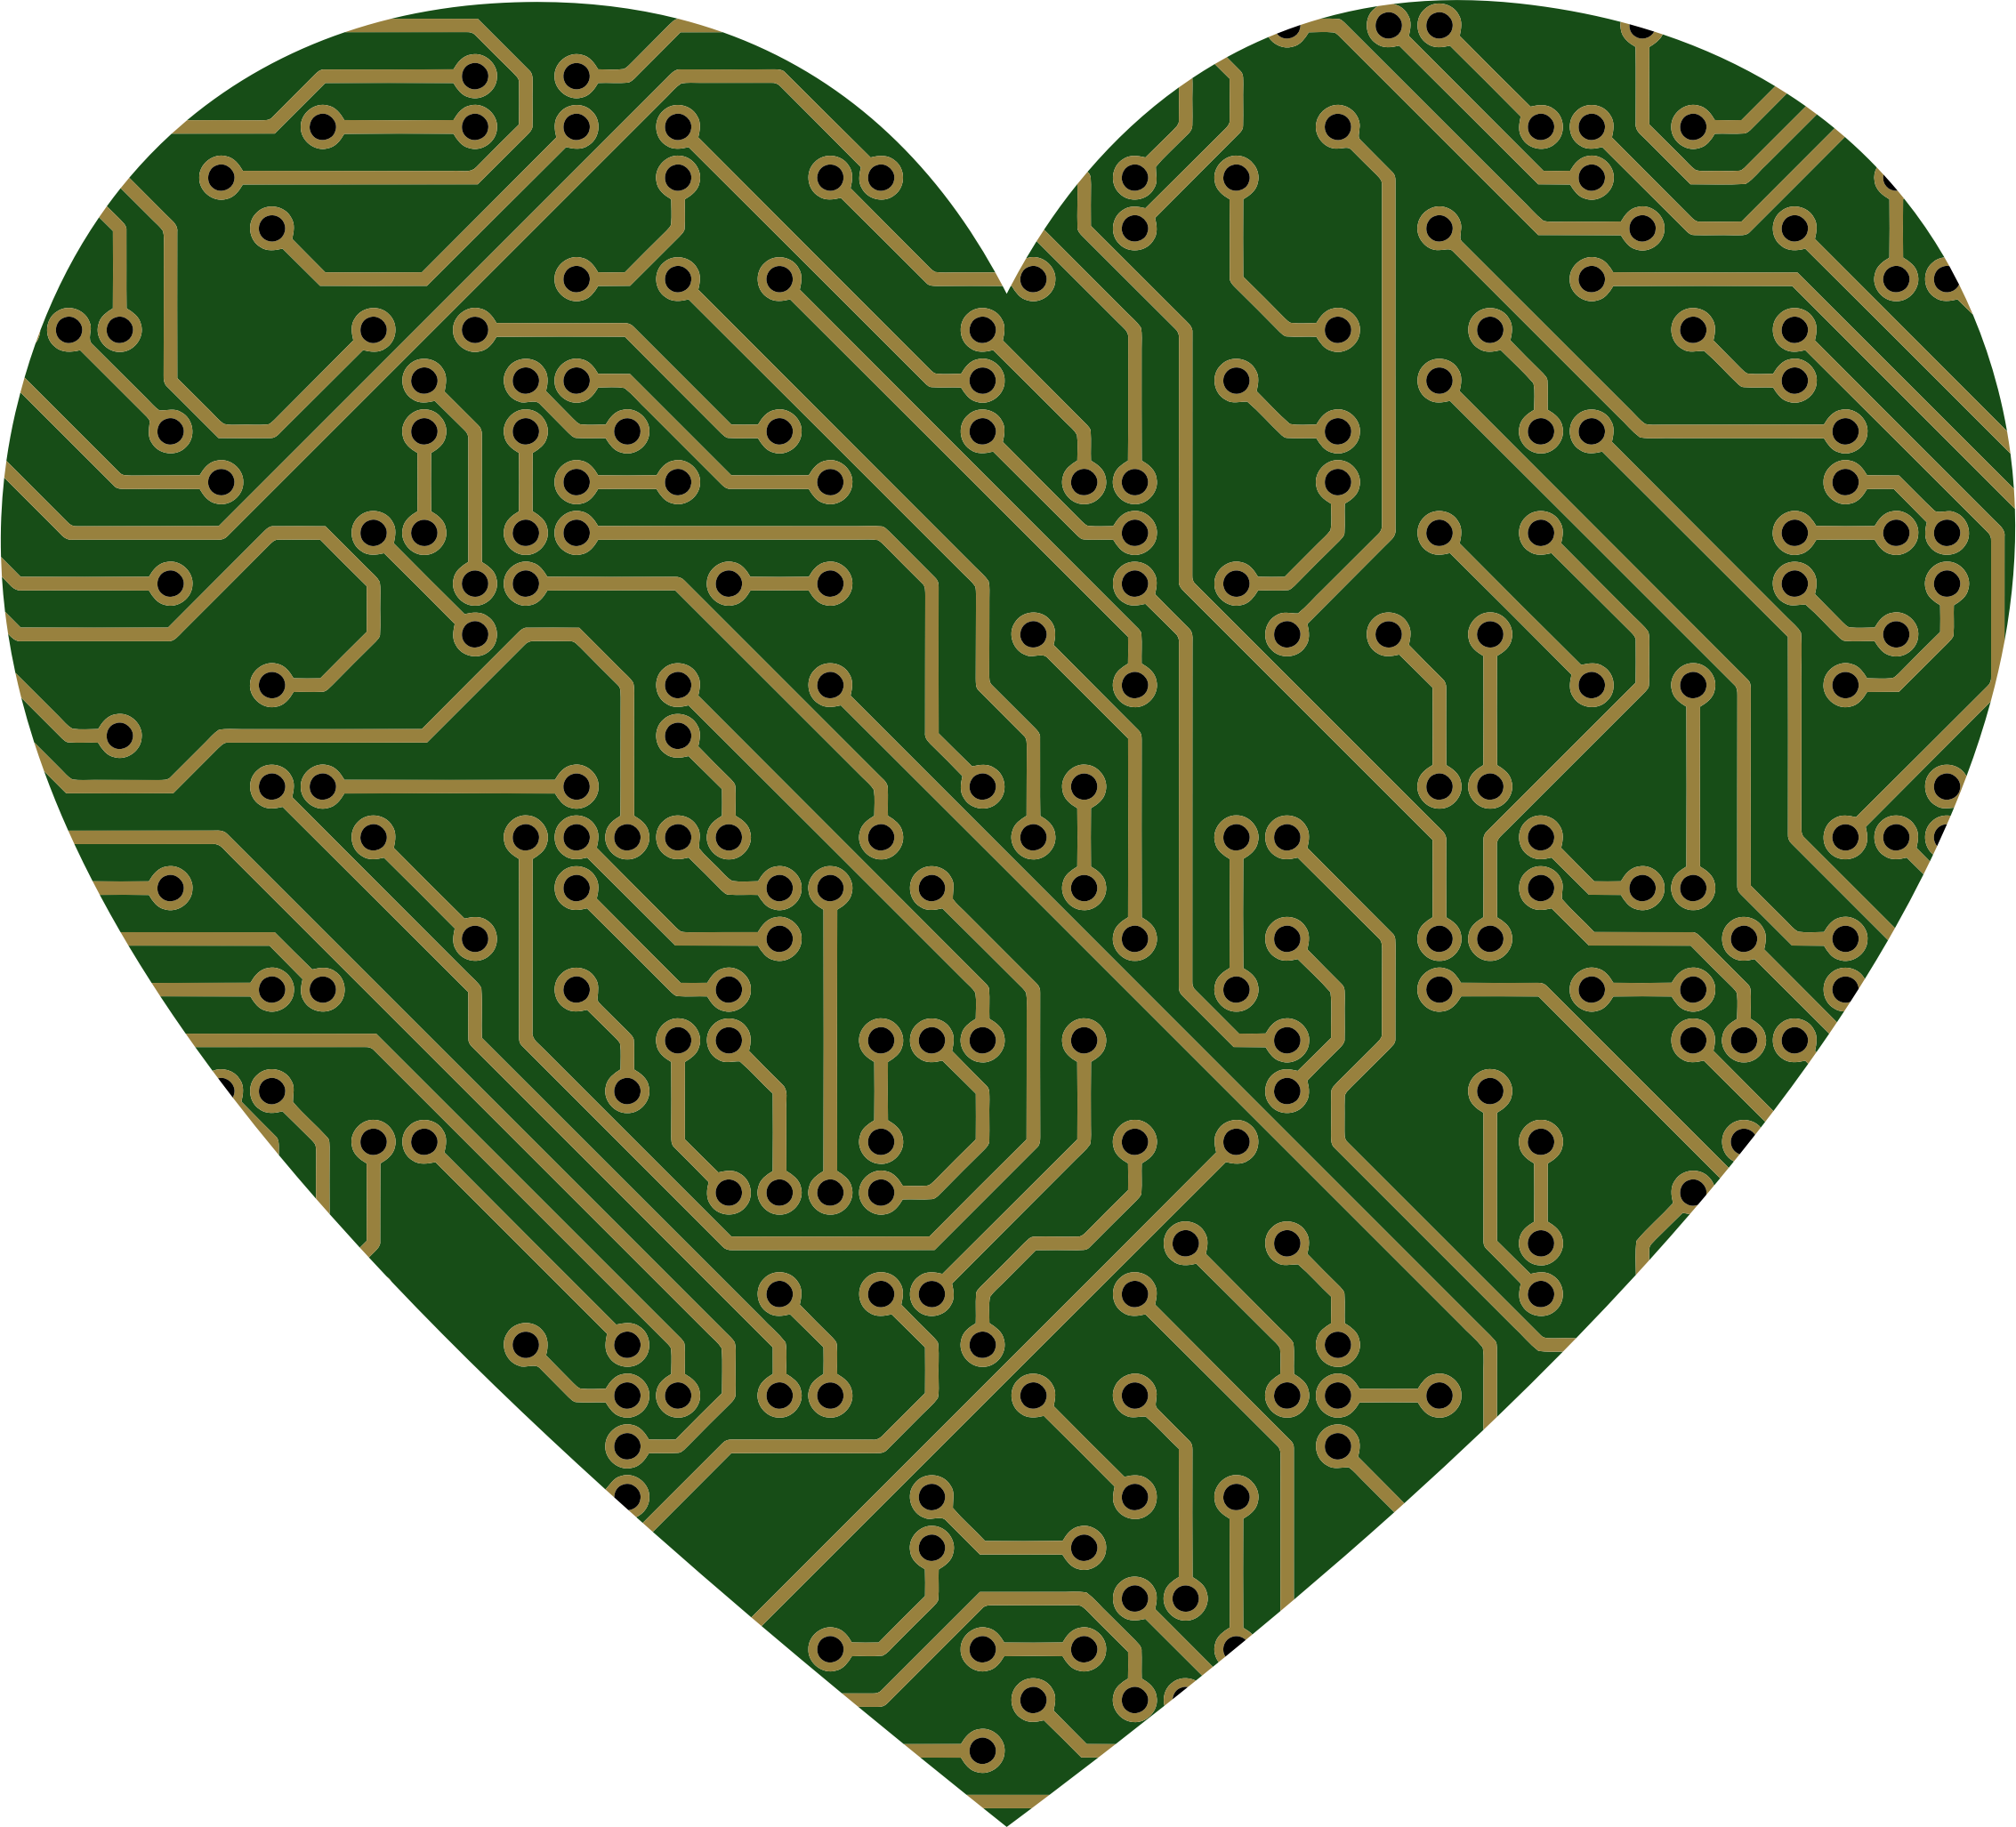 Circuit heart png. Printed board icons free